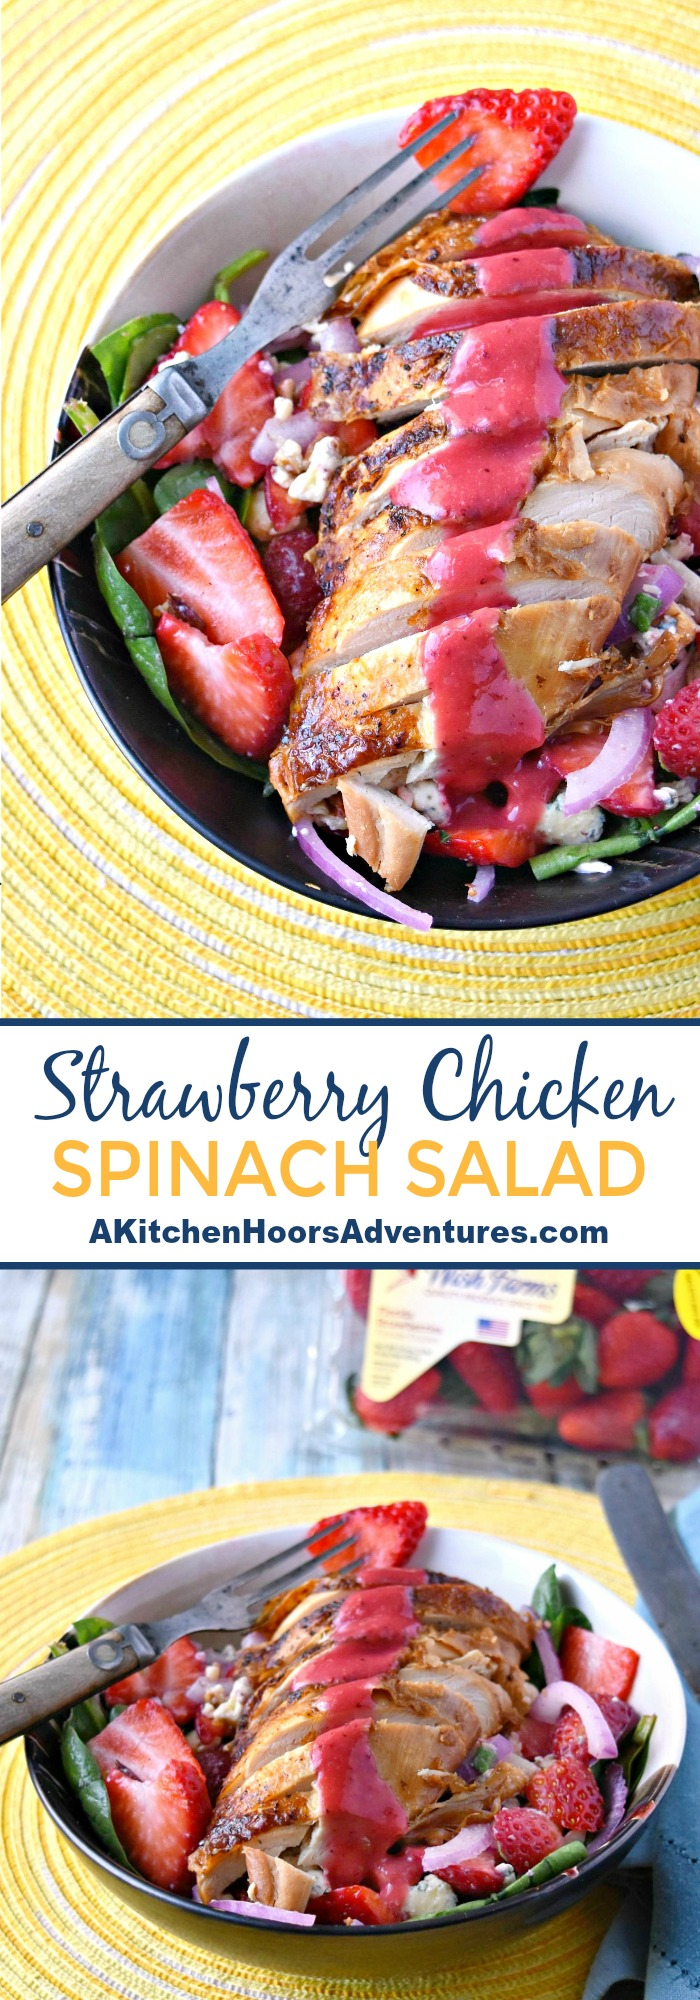 Using in season Florida strawberries, this Cobb Style Strawberry Chicken Salad is not only packed with strawberry flavor but it's a way to start the new year off right!  Not only are strawberries in the salad, but they're in the dressing, too! #FLStrawberry #SundaySupper #healthyrecipe #strawberrysalad